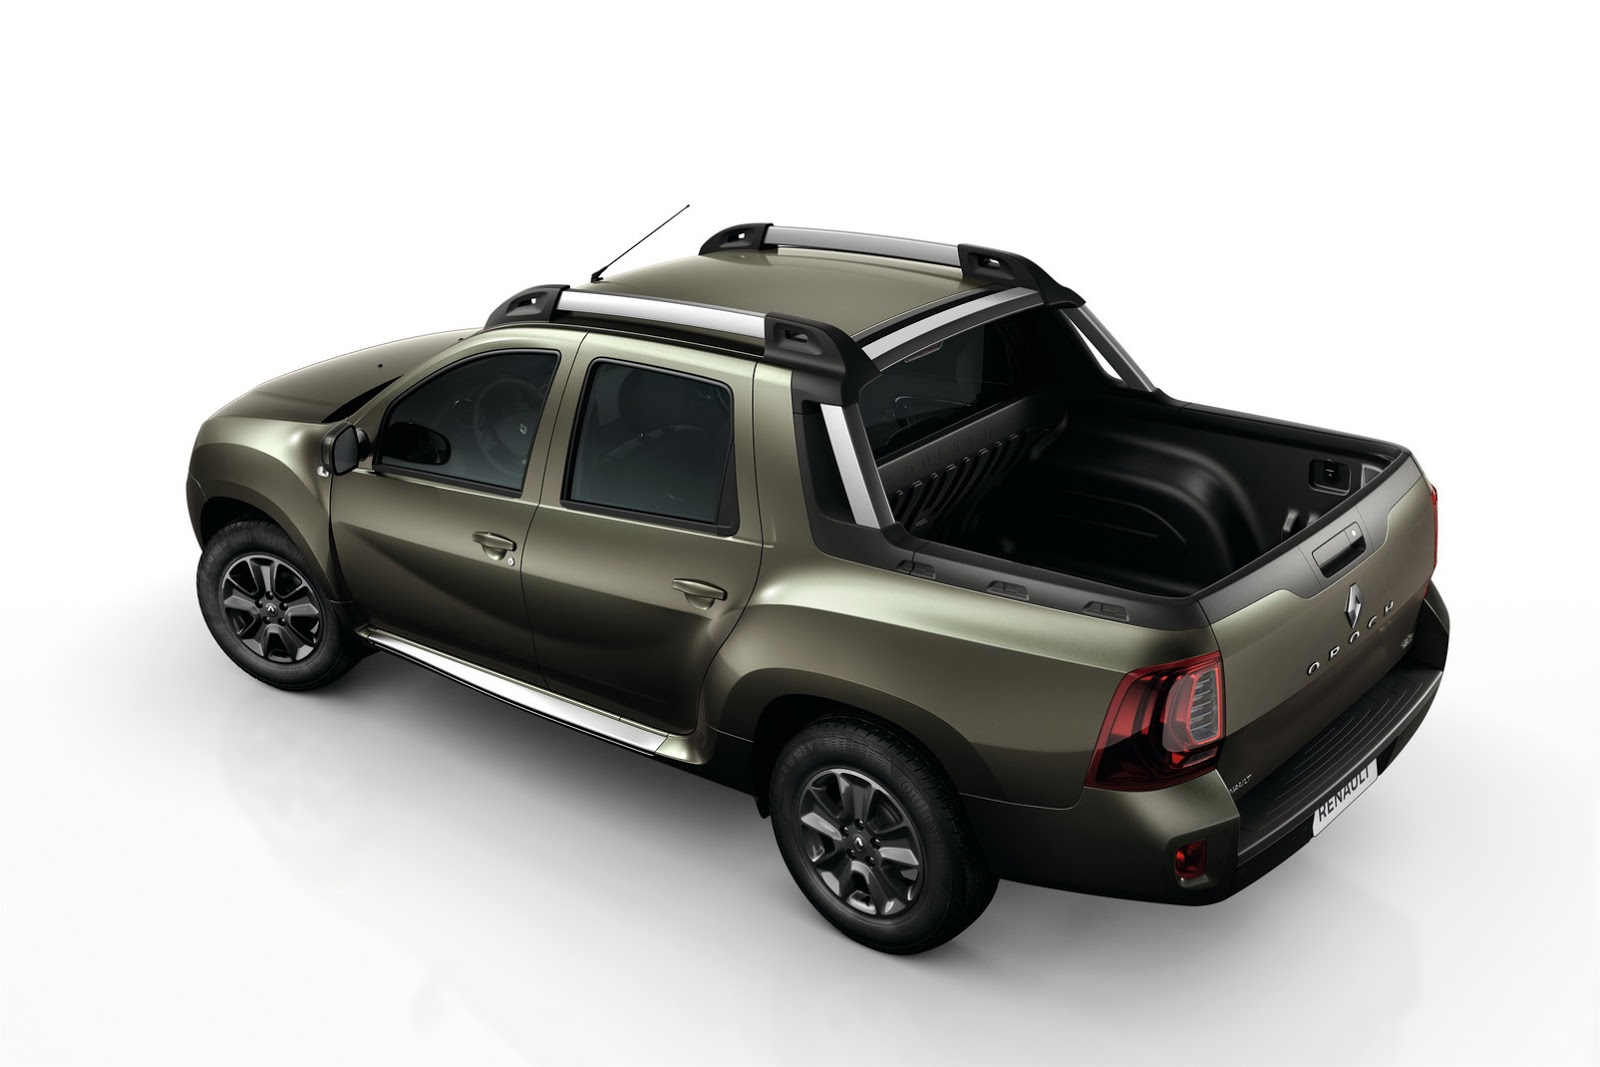 2019 Renault Duster Oroch Concept photo - 1